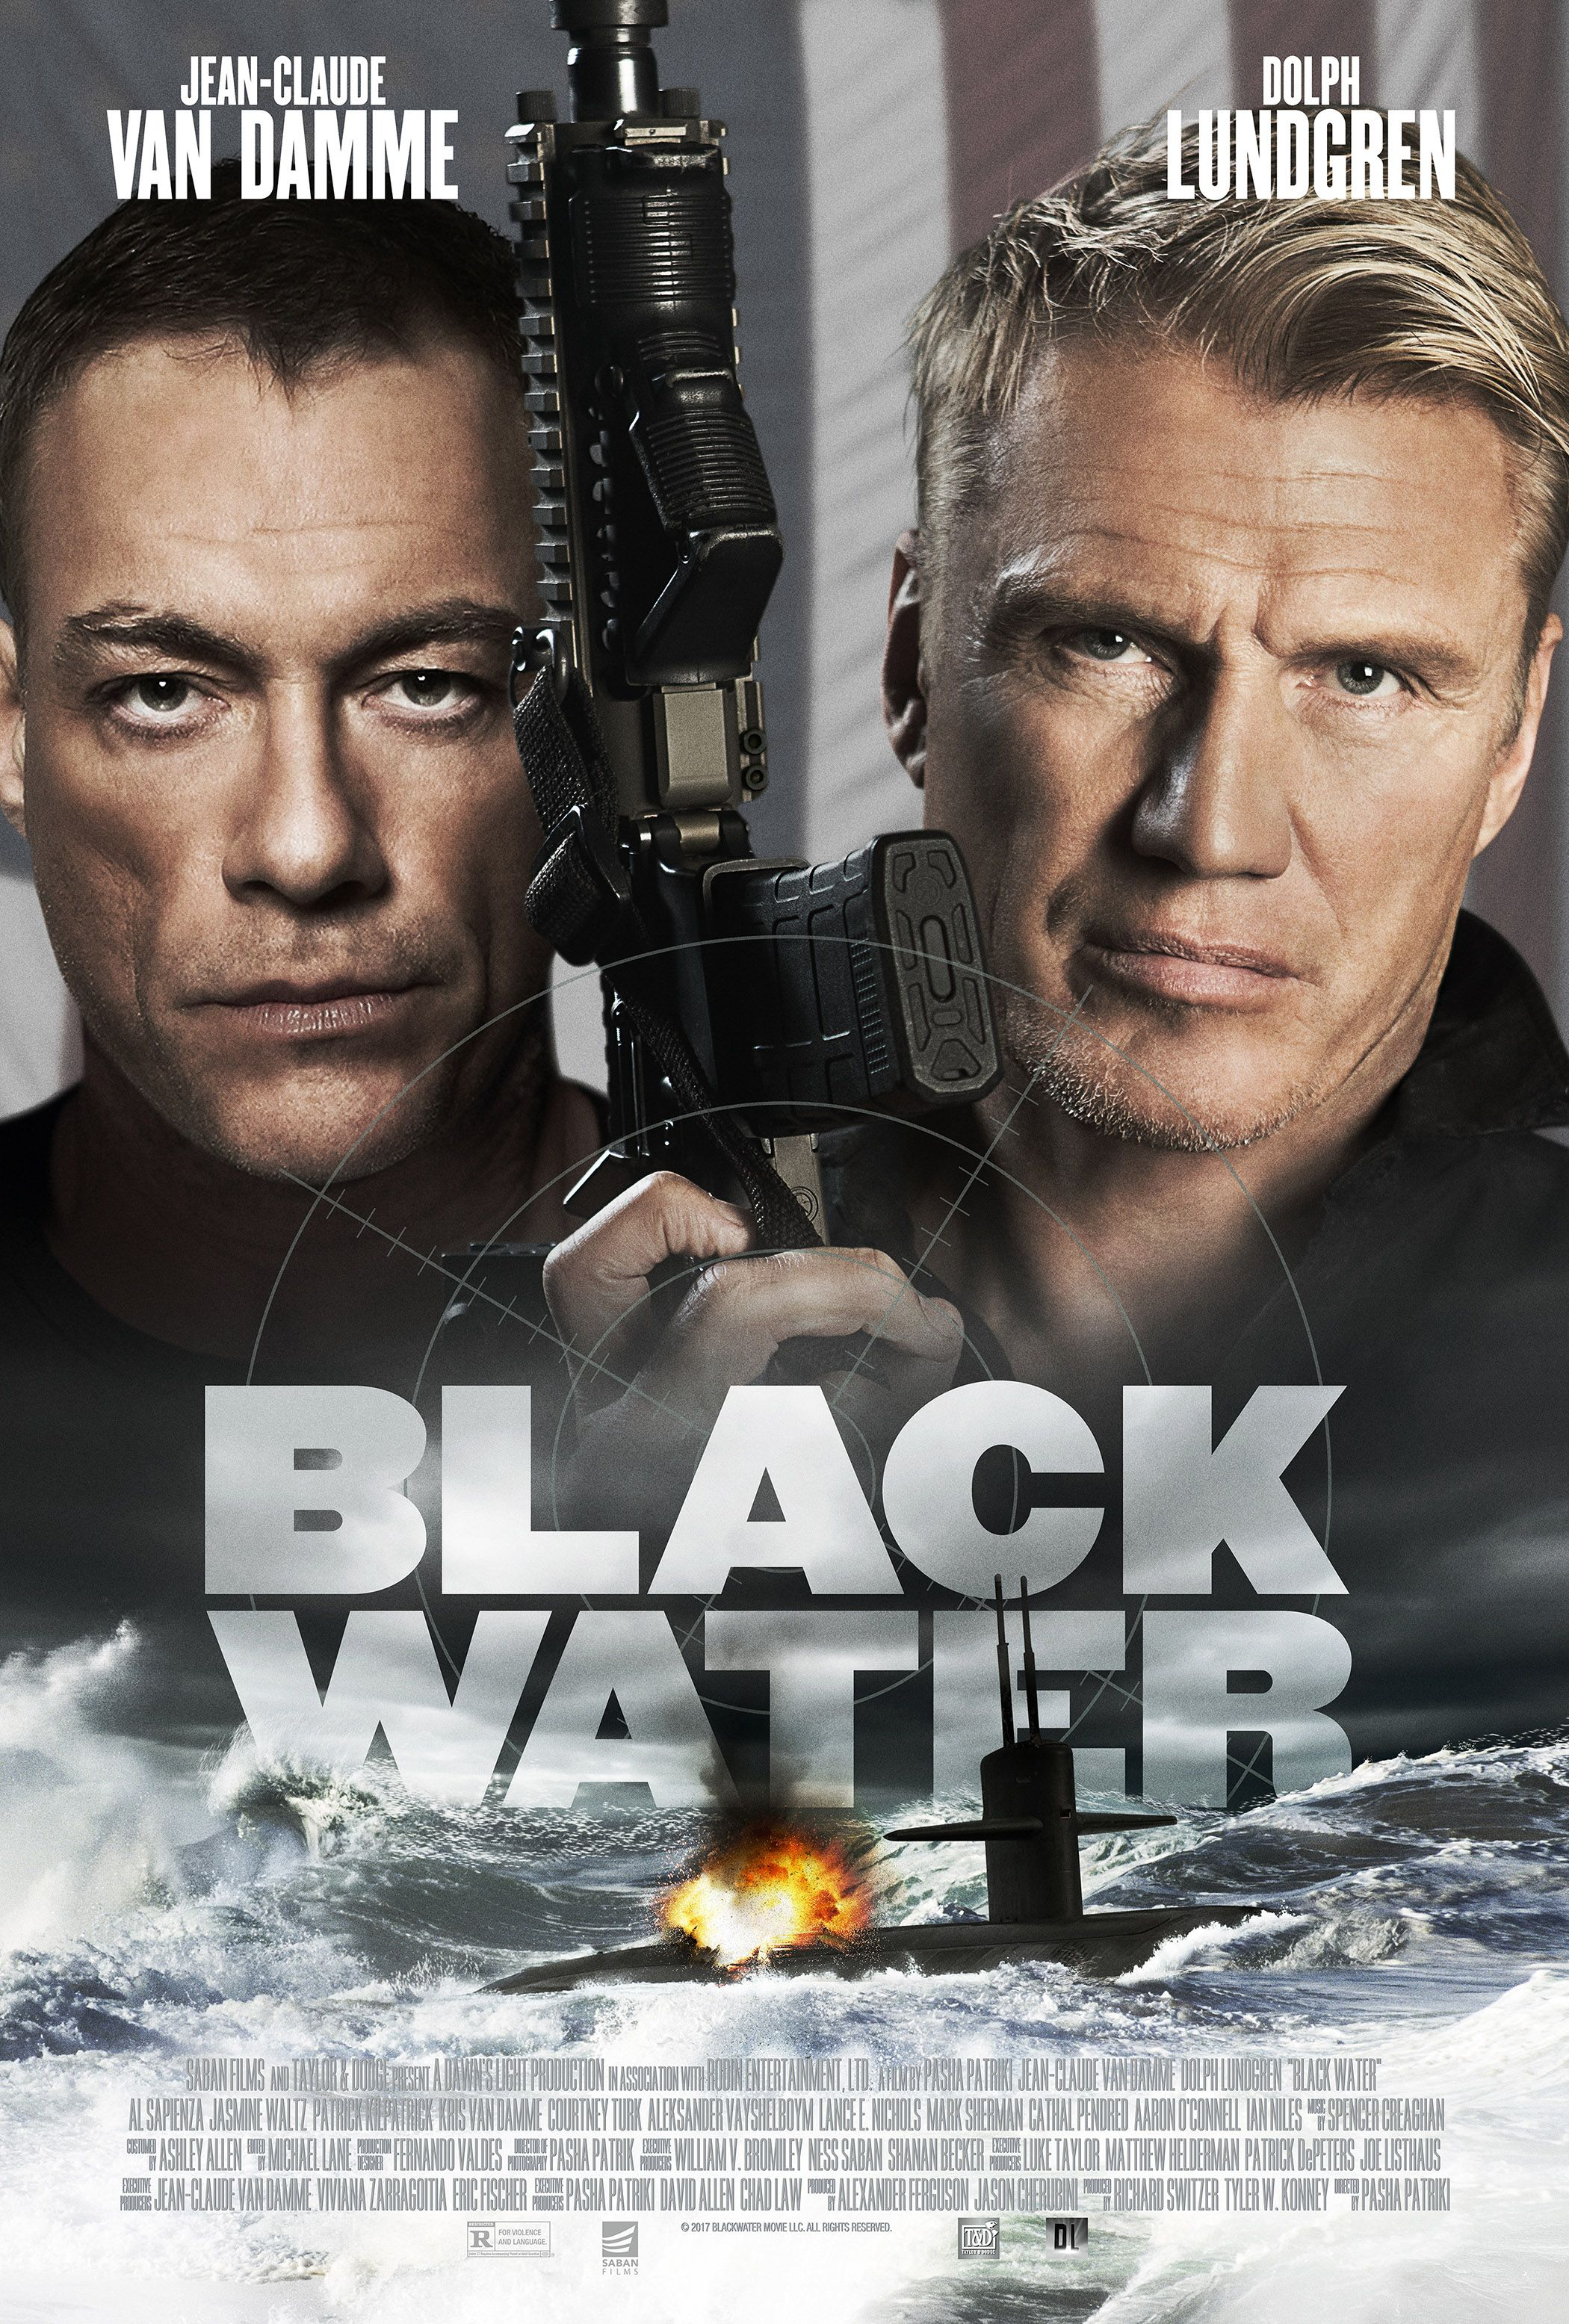 Jean-Claude Van Damme and Dolph Lundgren Join Forces in  Black Water   Trailer d94e118c15b